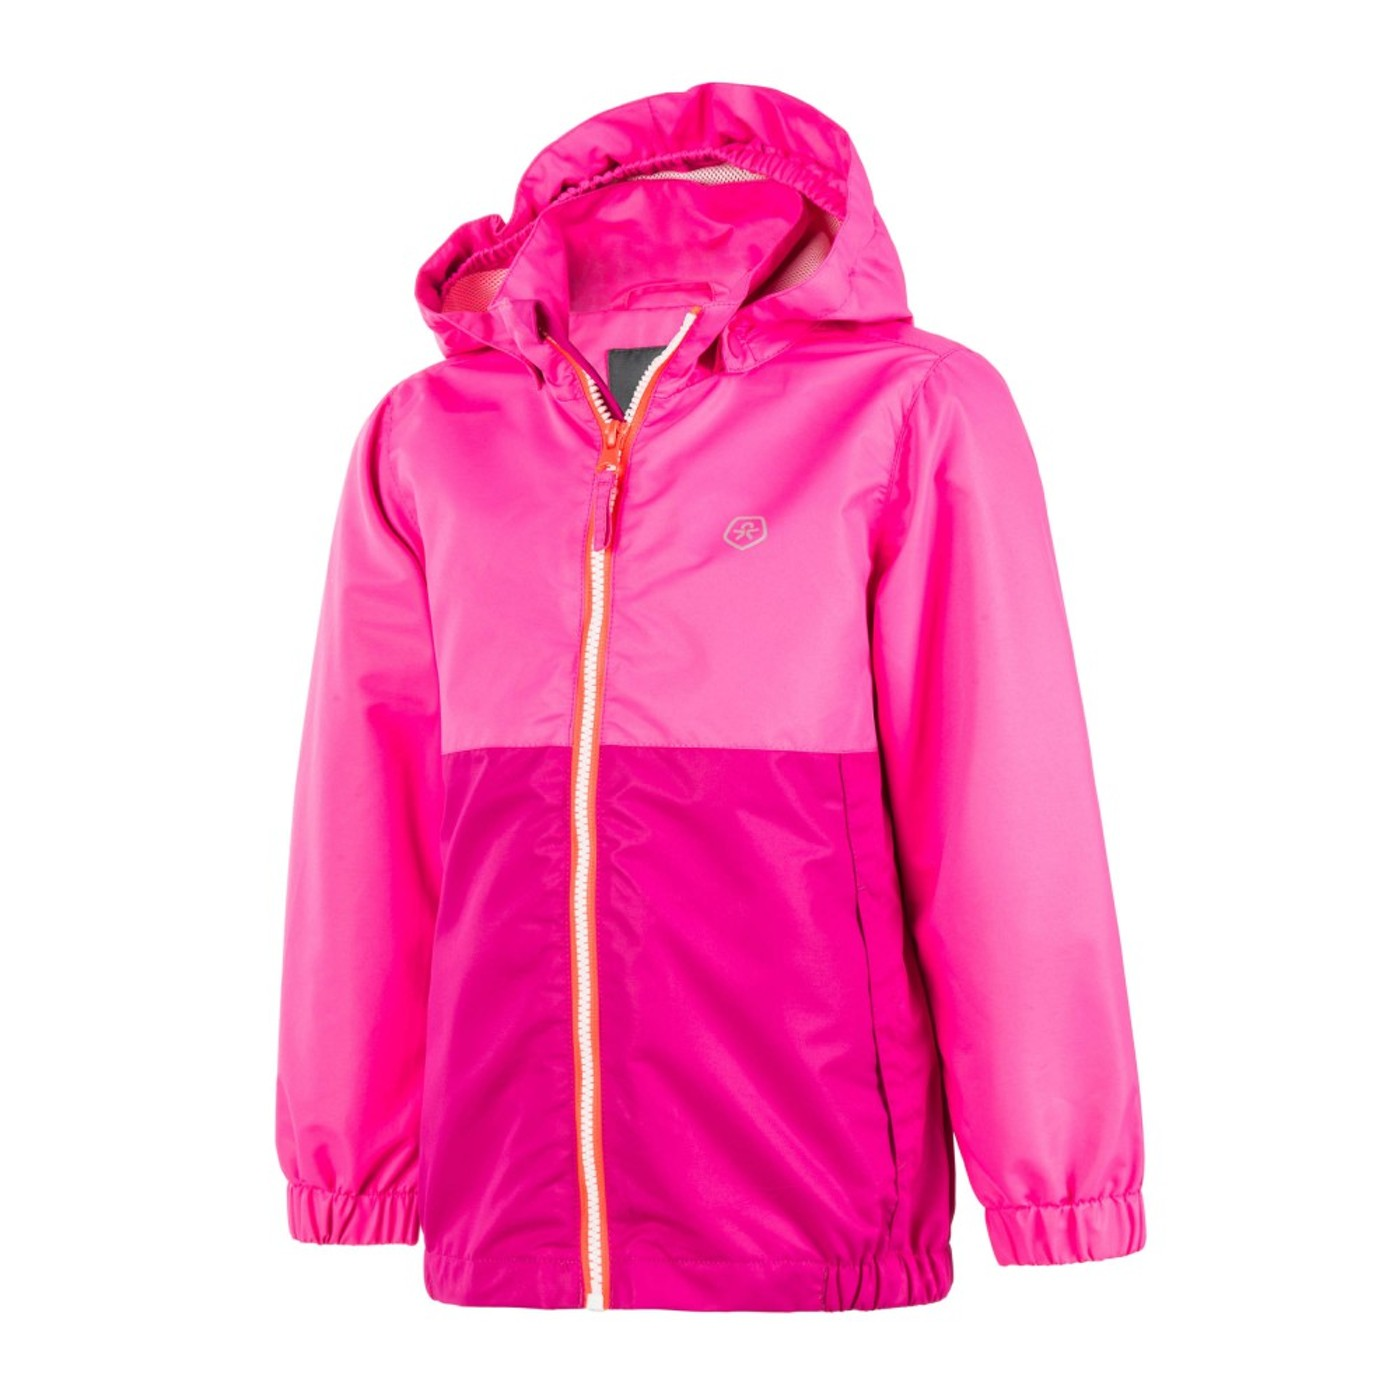 COLOR Outdoorjacke THY - Kinder